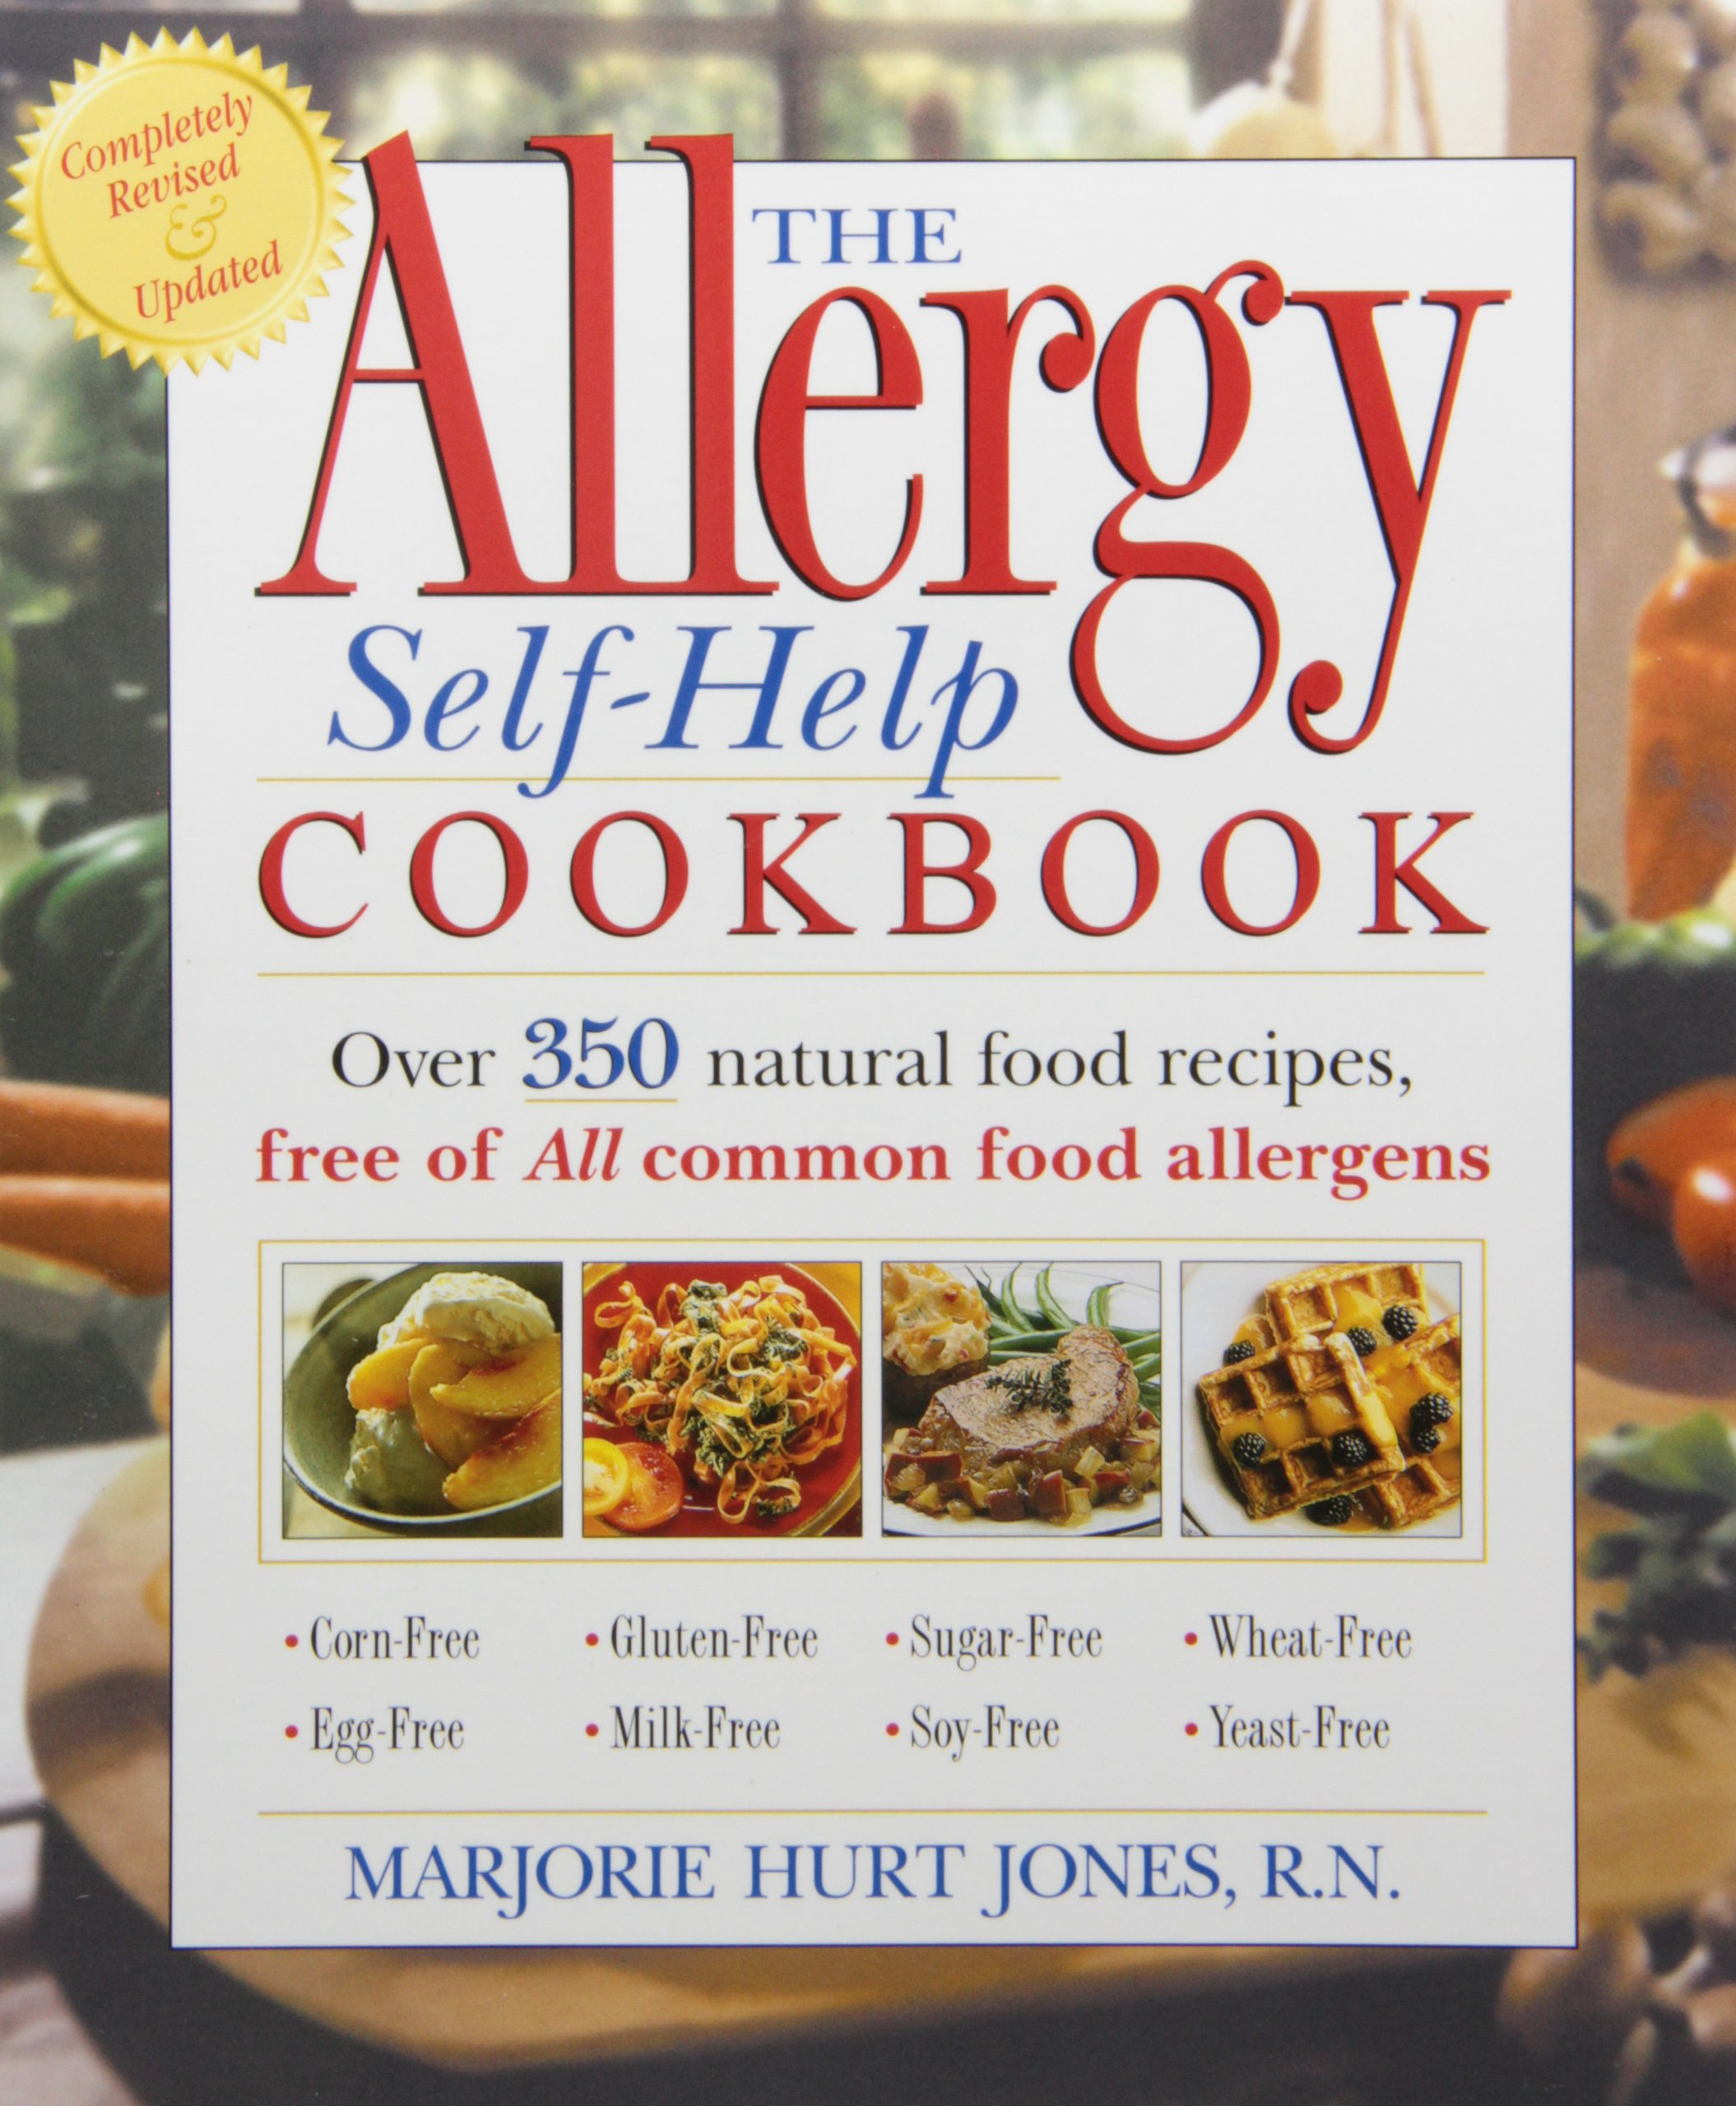 The allergy self help cookbook over 350 natural foods recipes the allergy self help cookbook over 350 natural foods recipes free of all common food allergens wheat free milk free egg free corn free sugar free forumfinder Images